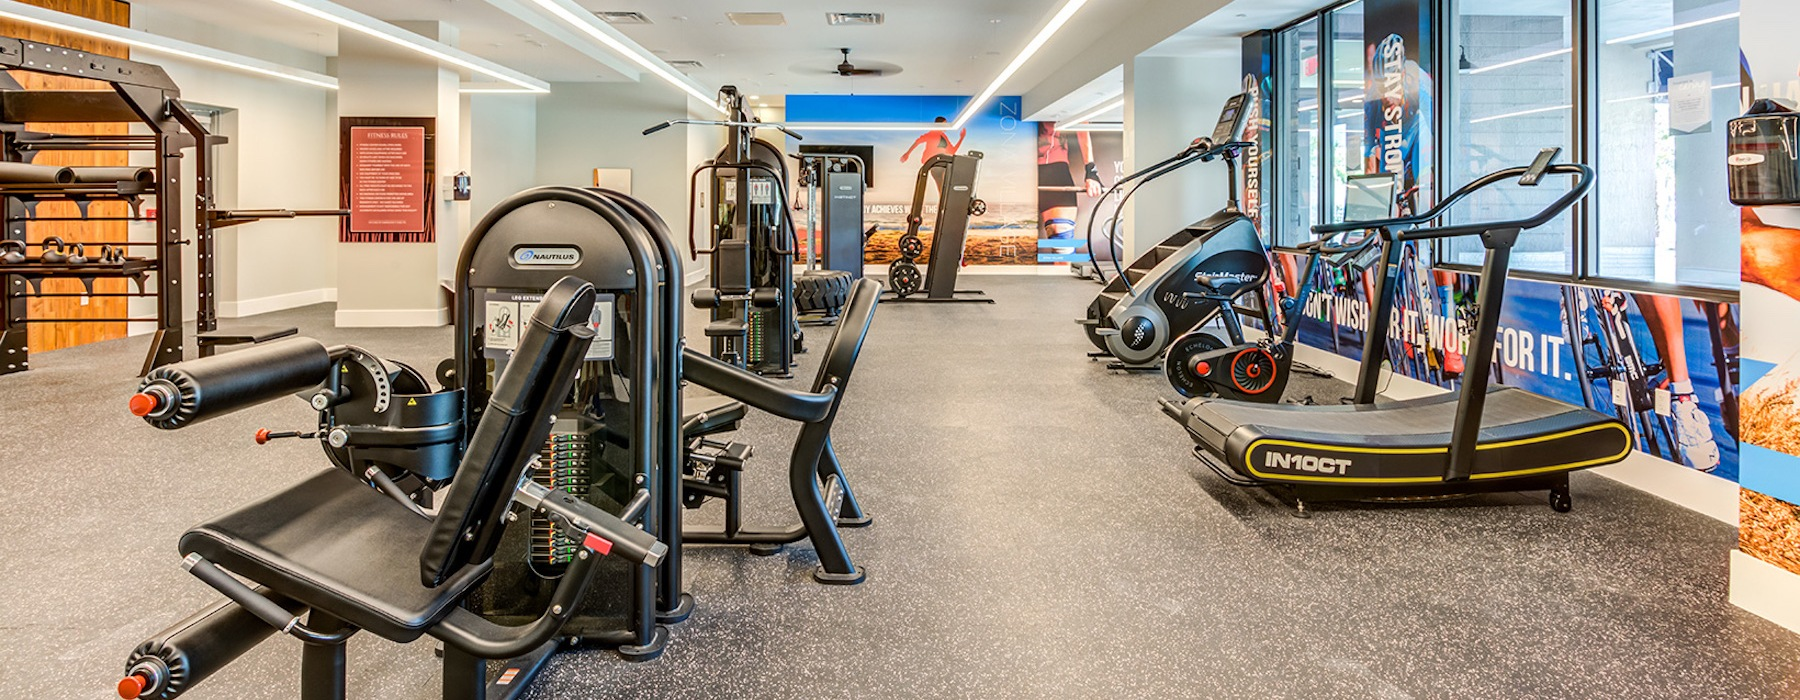 spacious fitness center with equipment and large, open spaces